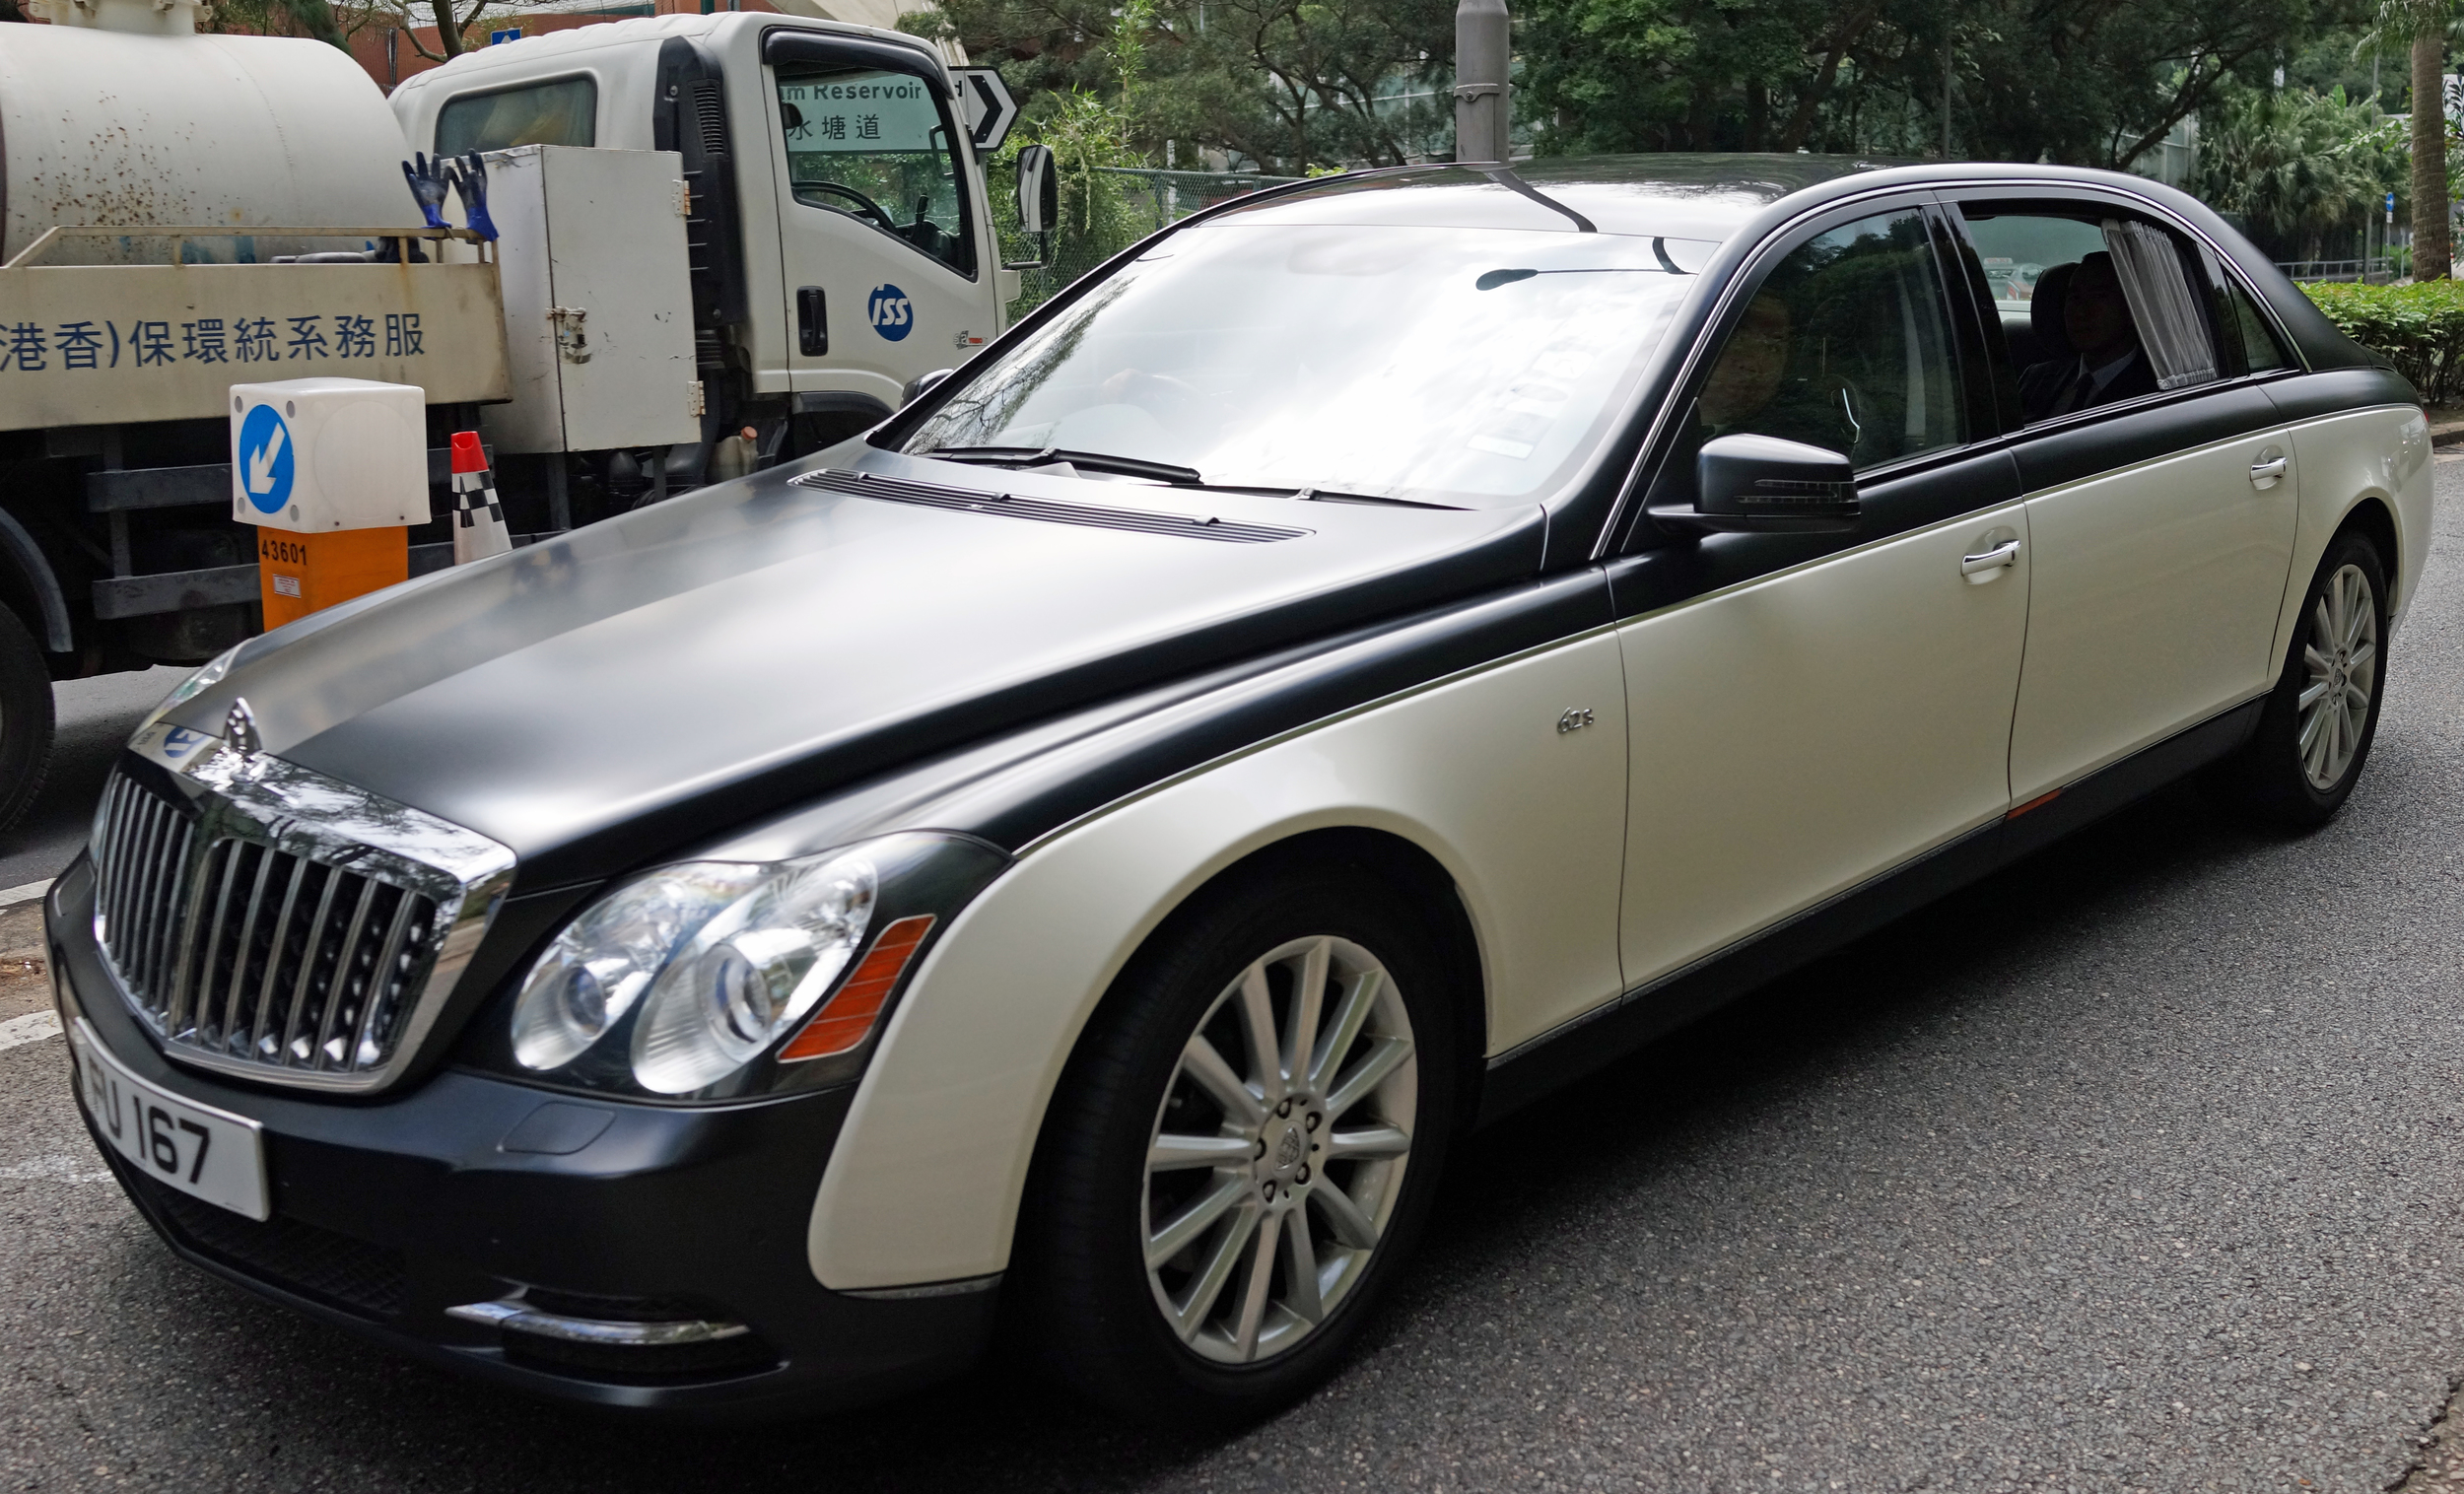 The Maybach is the must have car for our super rich billionaires, lovely car and I am glad that Mercedes Benz have brought it back... I am getting the evil eye from the bodyguard in the front passenger seat!